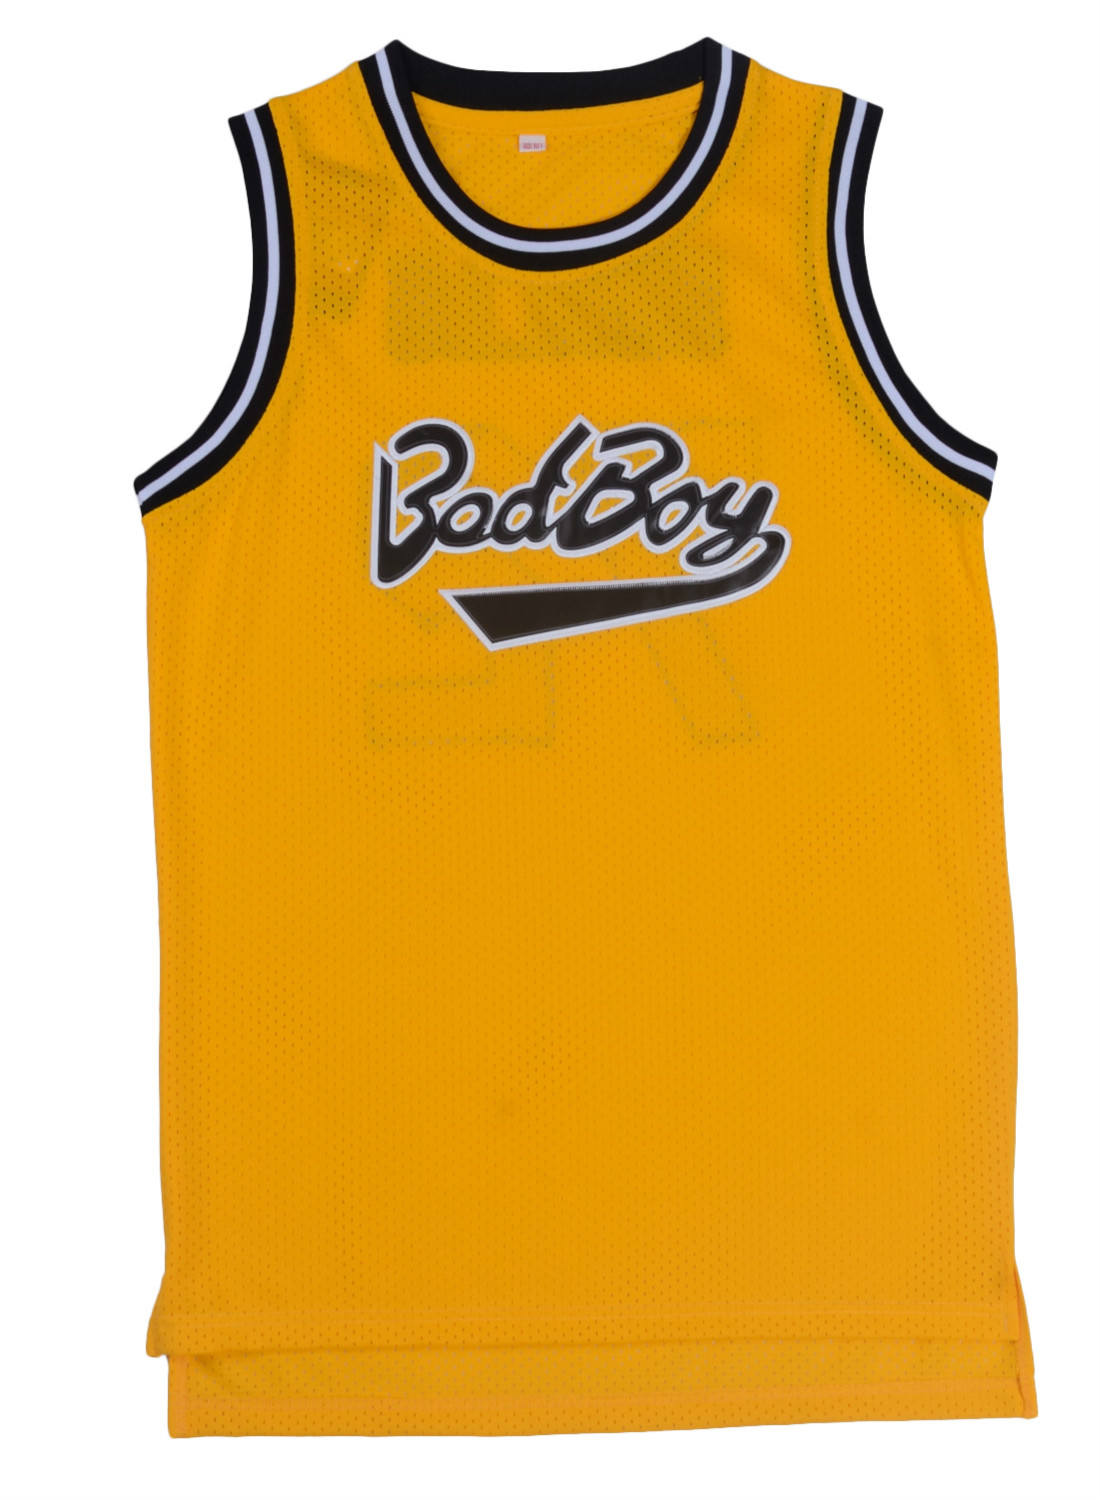 ee8d31883 Yellow Black Basketball Jersey Bad Boy Movie Basketball T shirts Cool Sport  Jersey Breathable Stitched Jersey Men Classic Jersey-in Basketball Jerseys  from ...